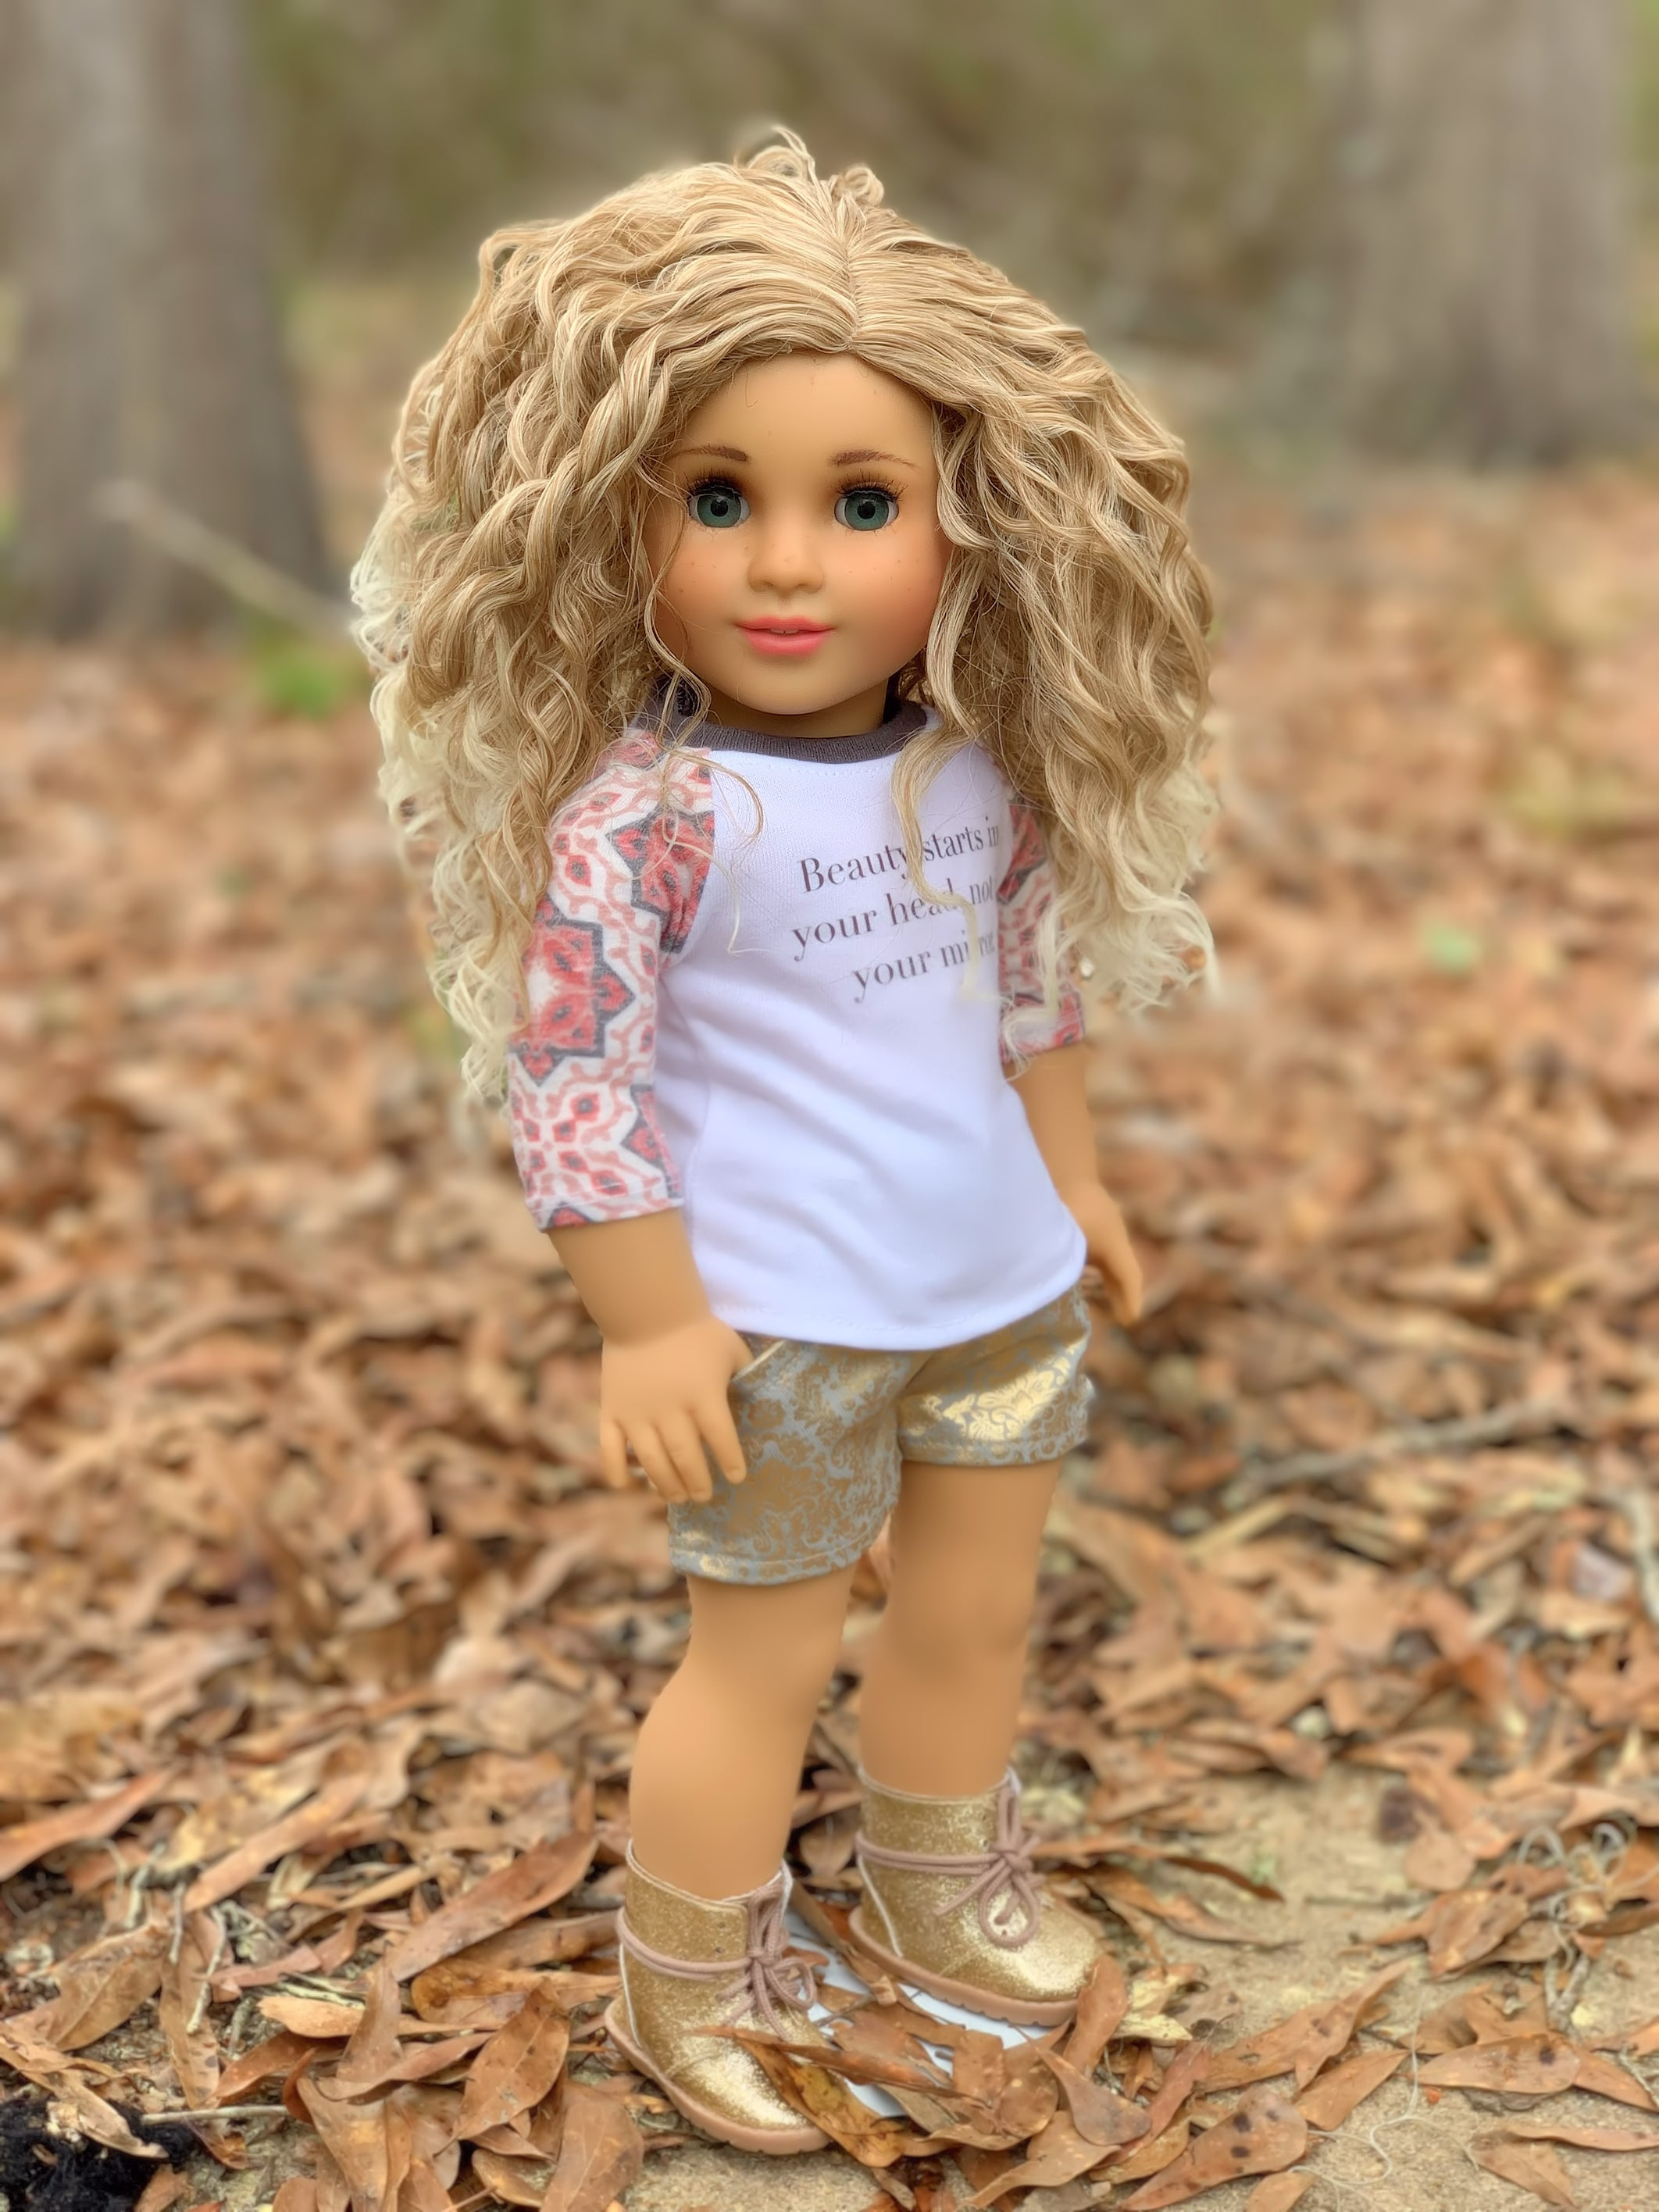 Zazou Dolls Exclusive BohoWaves WIG Caramel Twist for 18 Inch dolls such as OG & American Girl